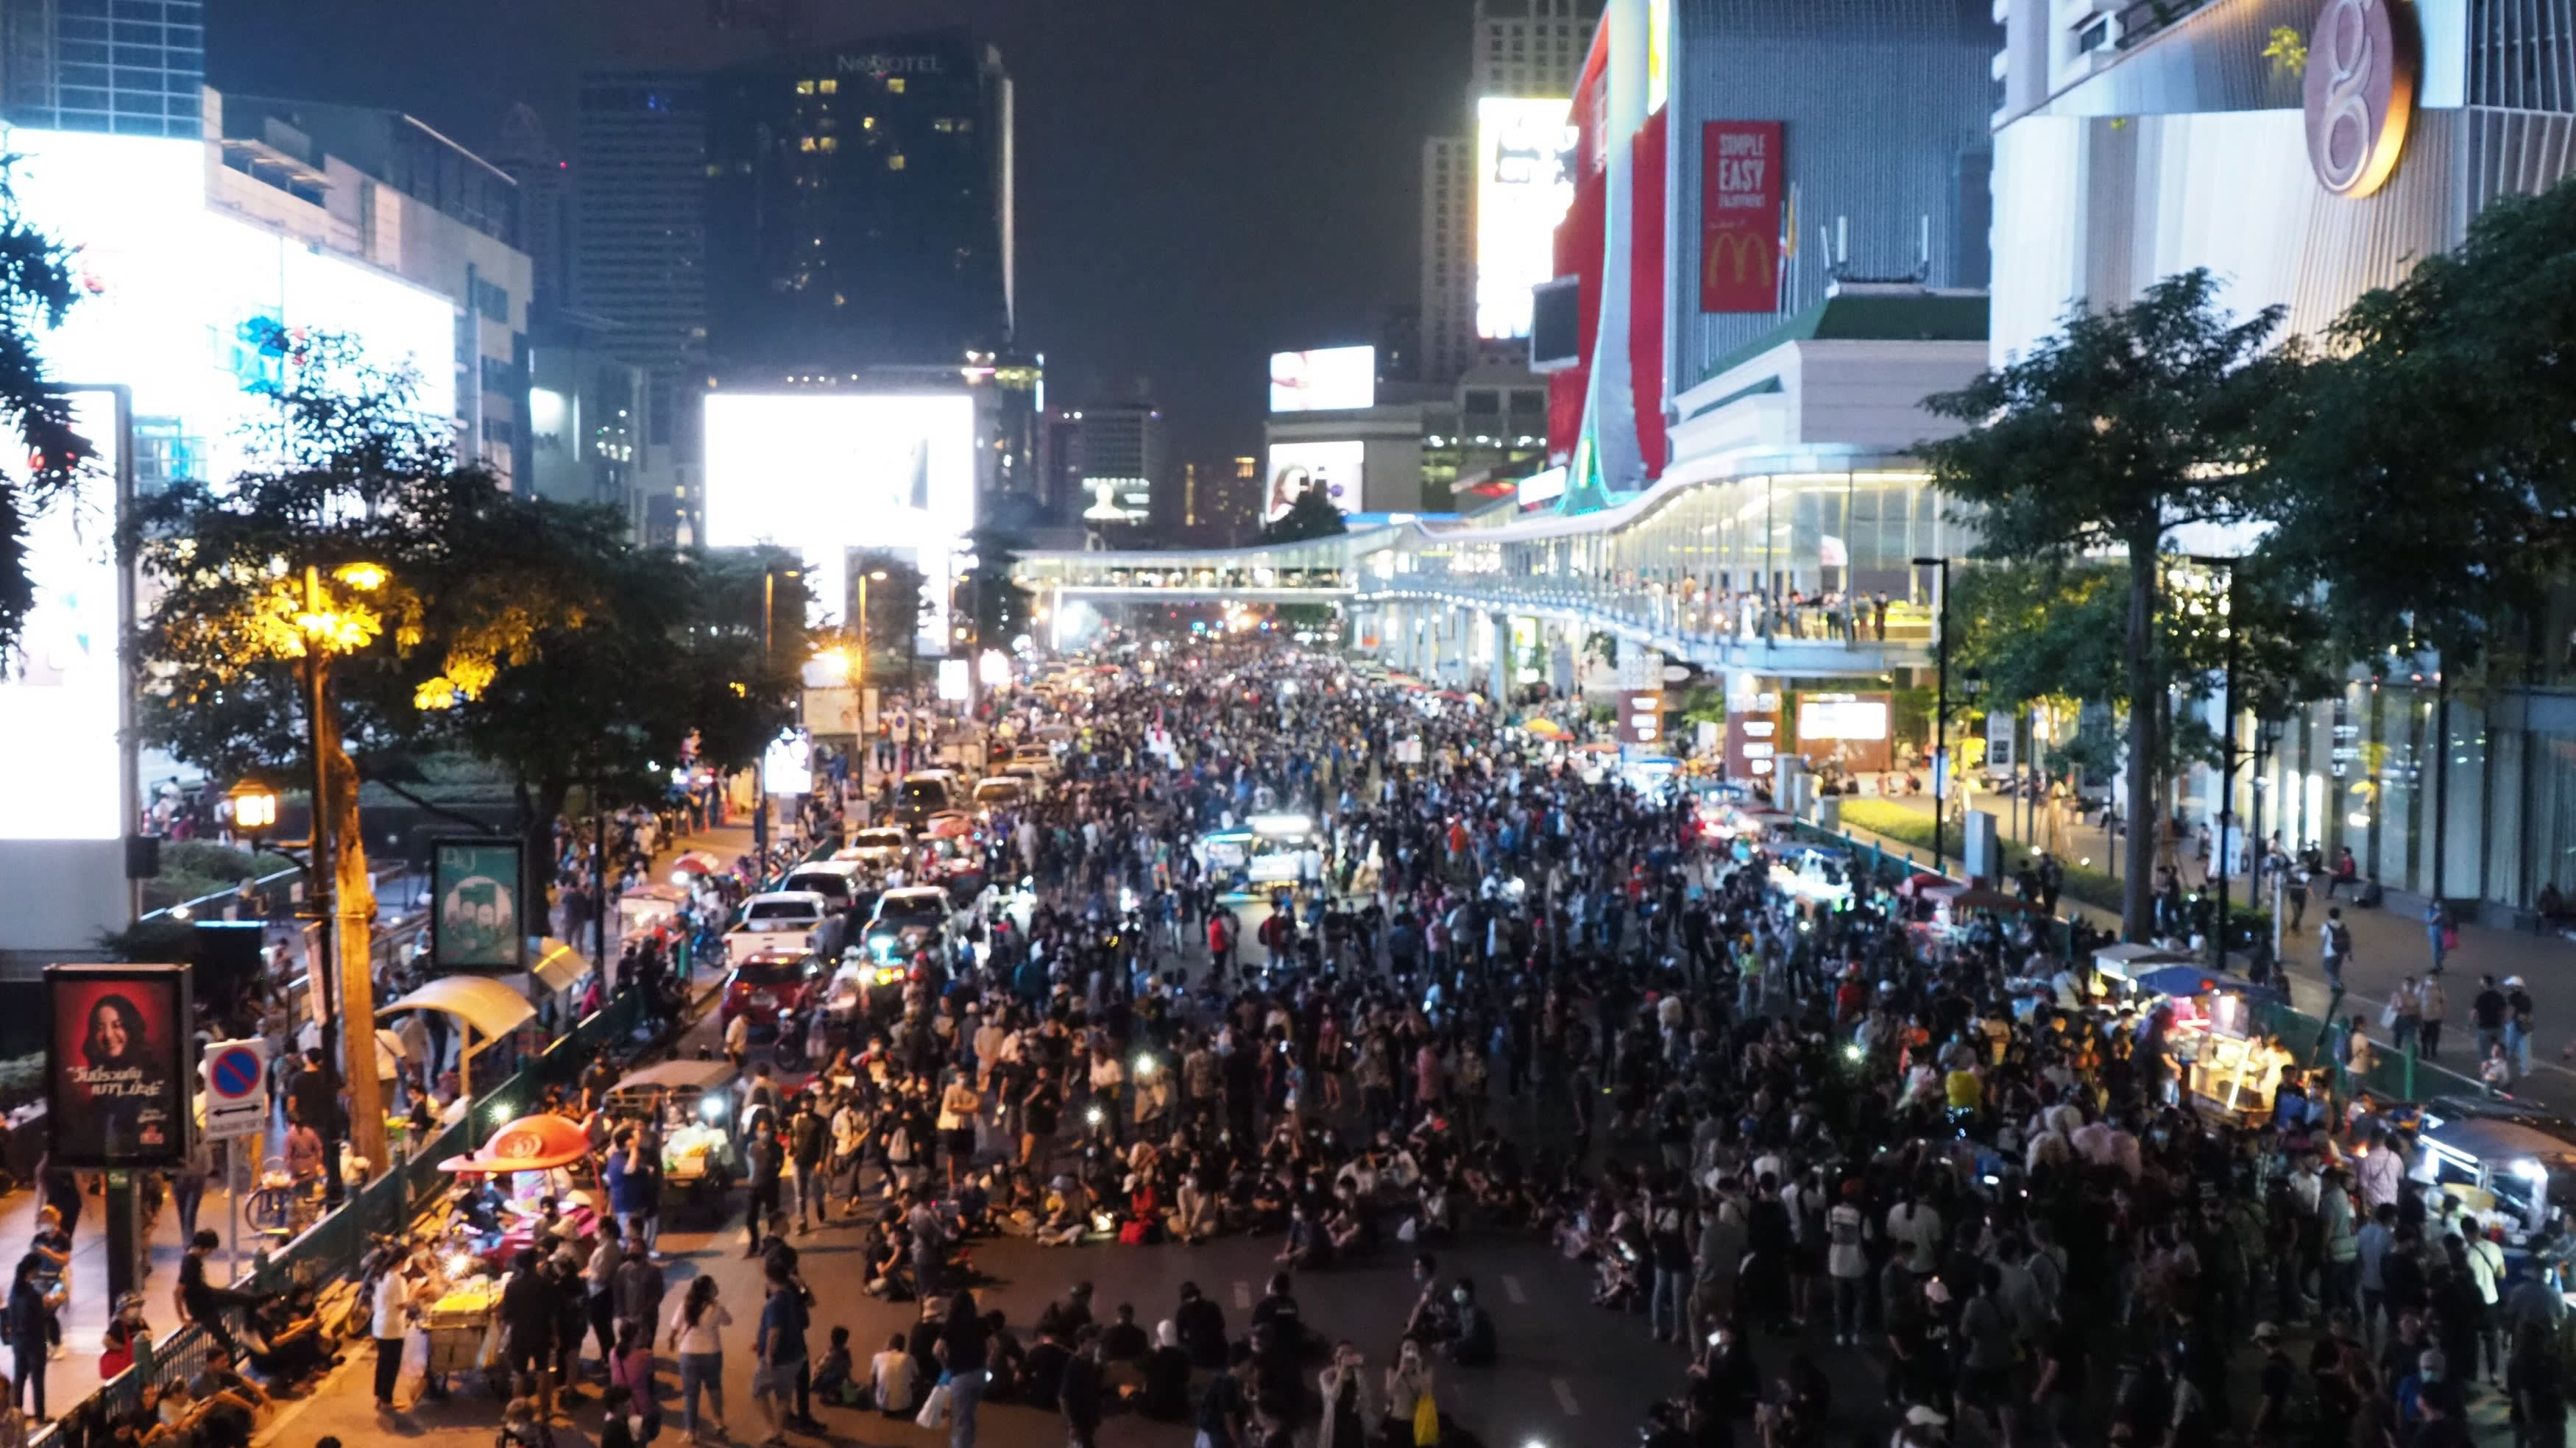 Thailand's youth protest draws thousands after PM refuses to quit -                         Nikkei Asia                         ArrowArtboardArtboardTitle ChevronTitle ChevronEye IconIcon FacebookIcon LinkedinIcon Mail ContactPath LayerIcon MailPositive ArrowIcon PrintTitle ChevronIcon Twitter